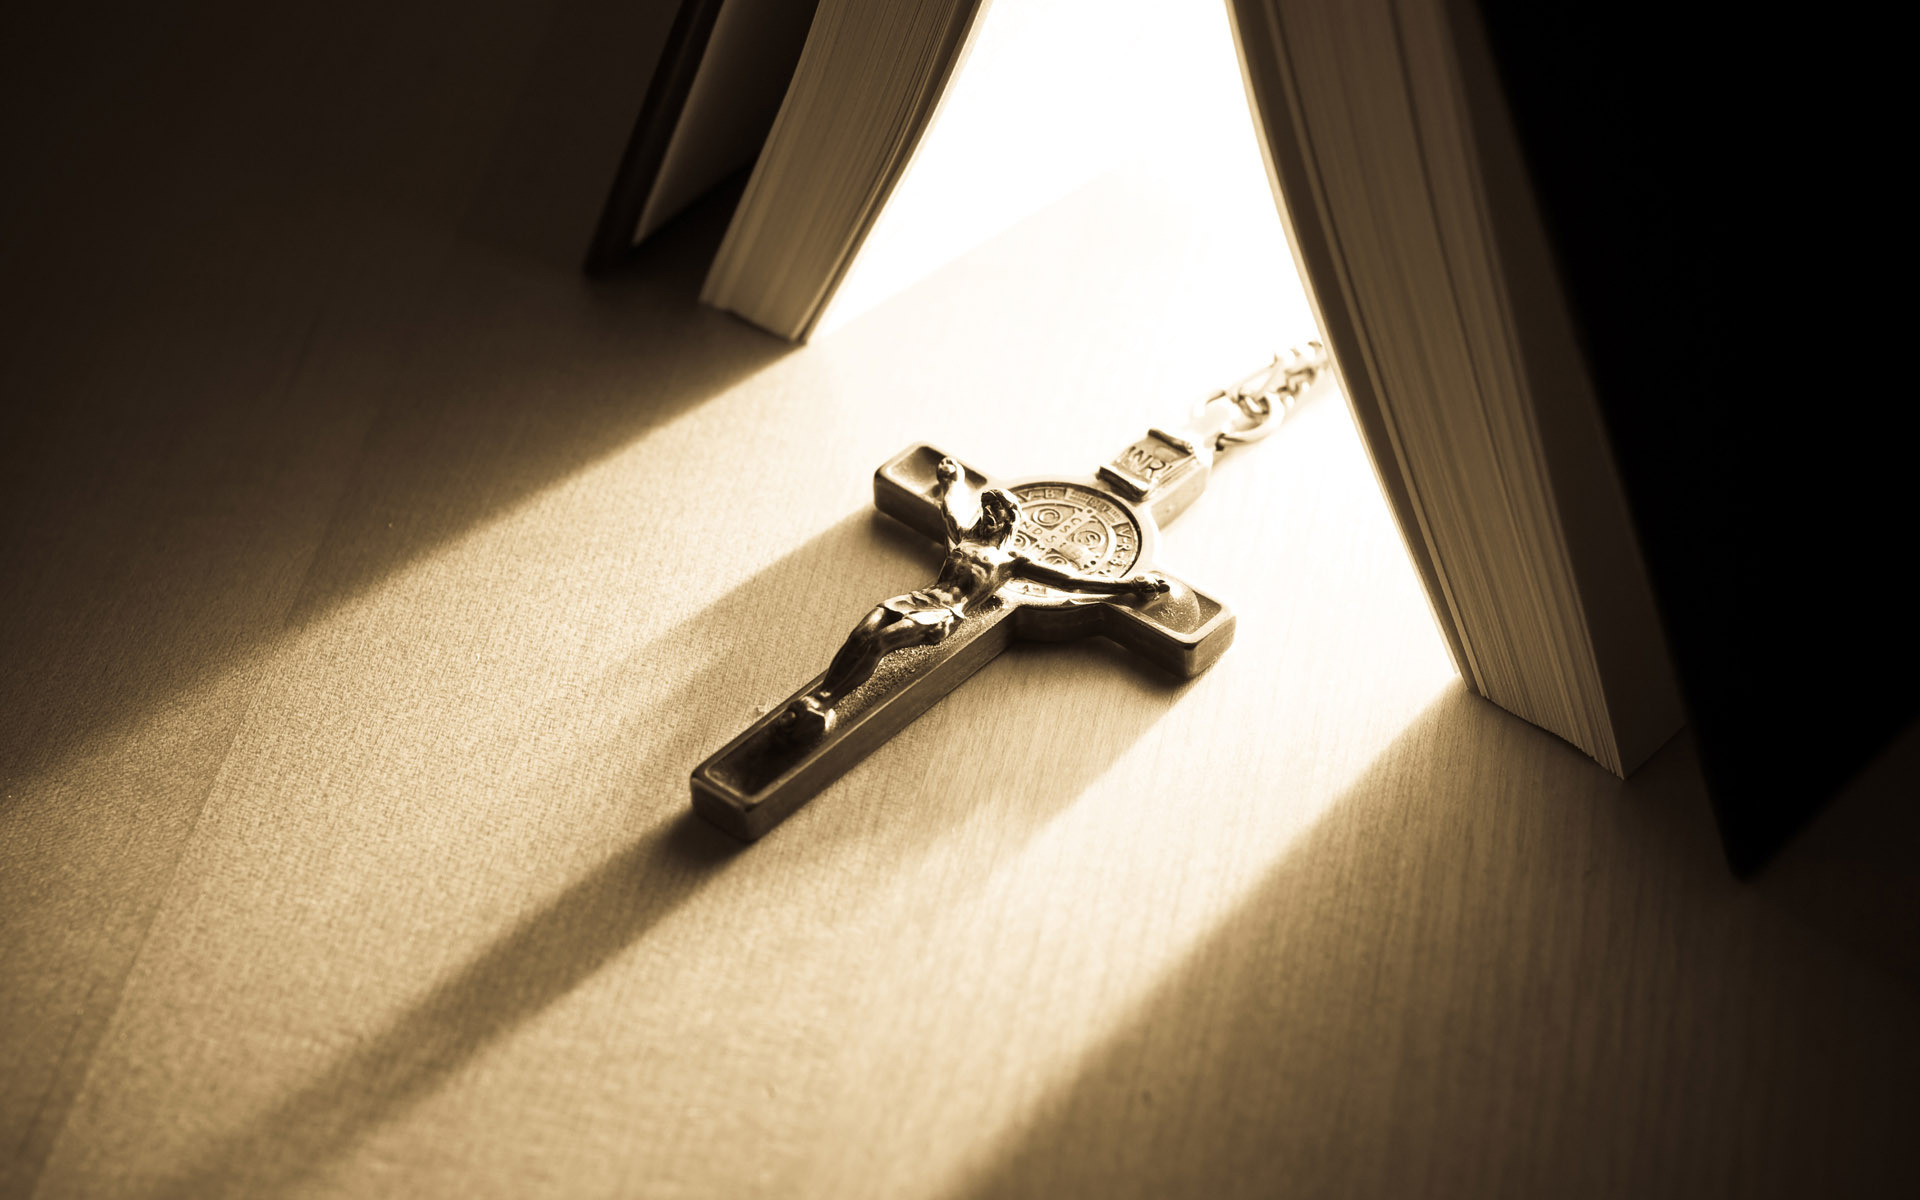 Res: 1920x1200, Religious Wallpapers – Religious Full HD Quality Wallpapers – download for  free